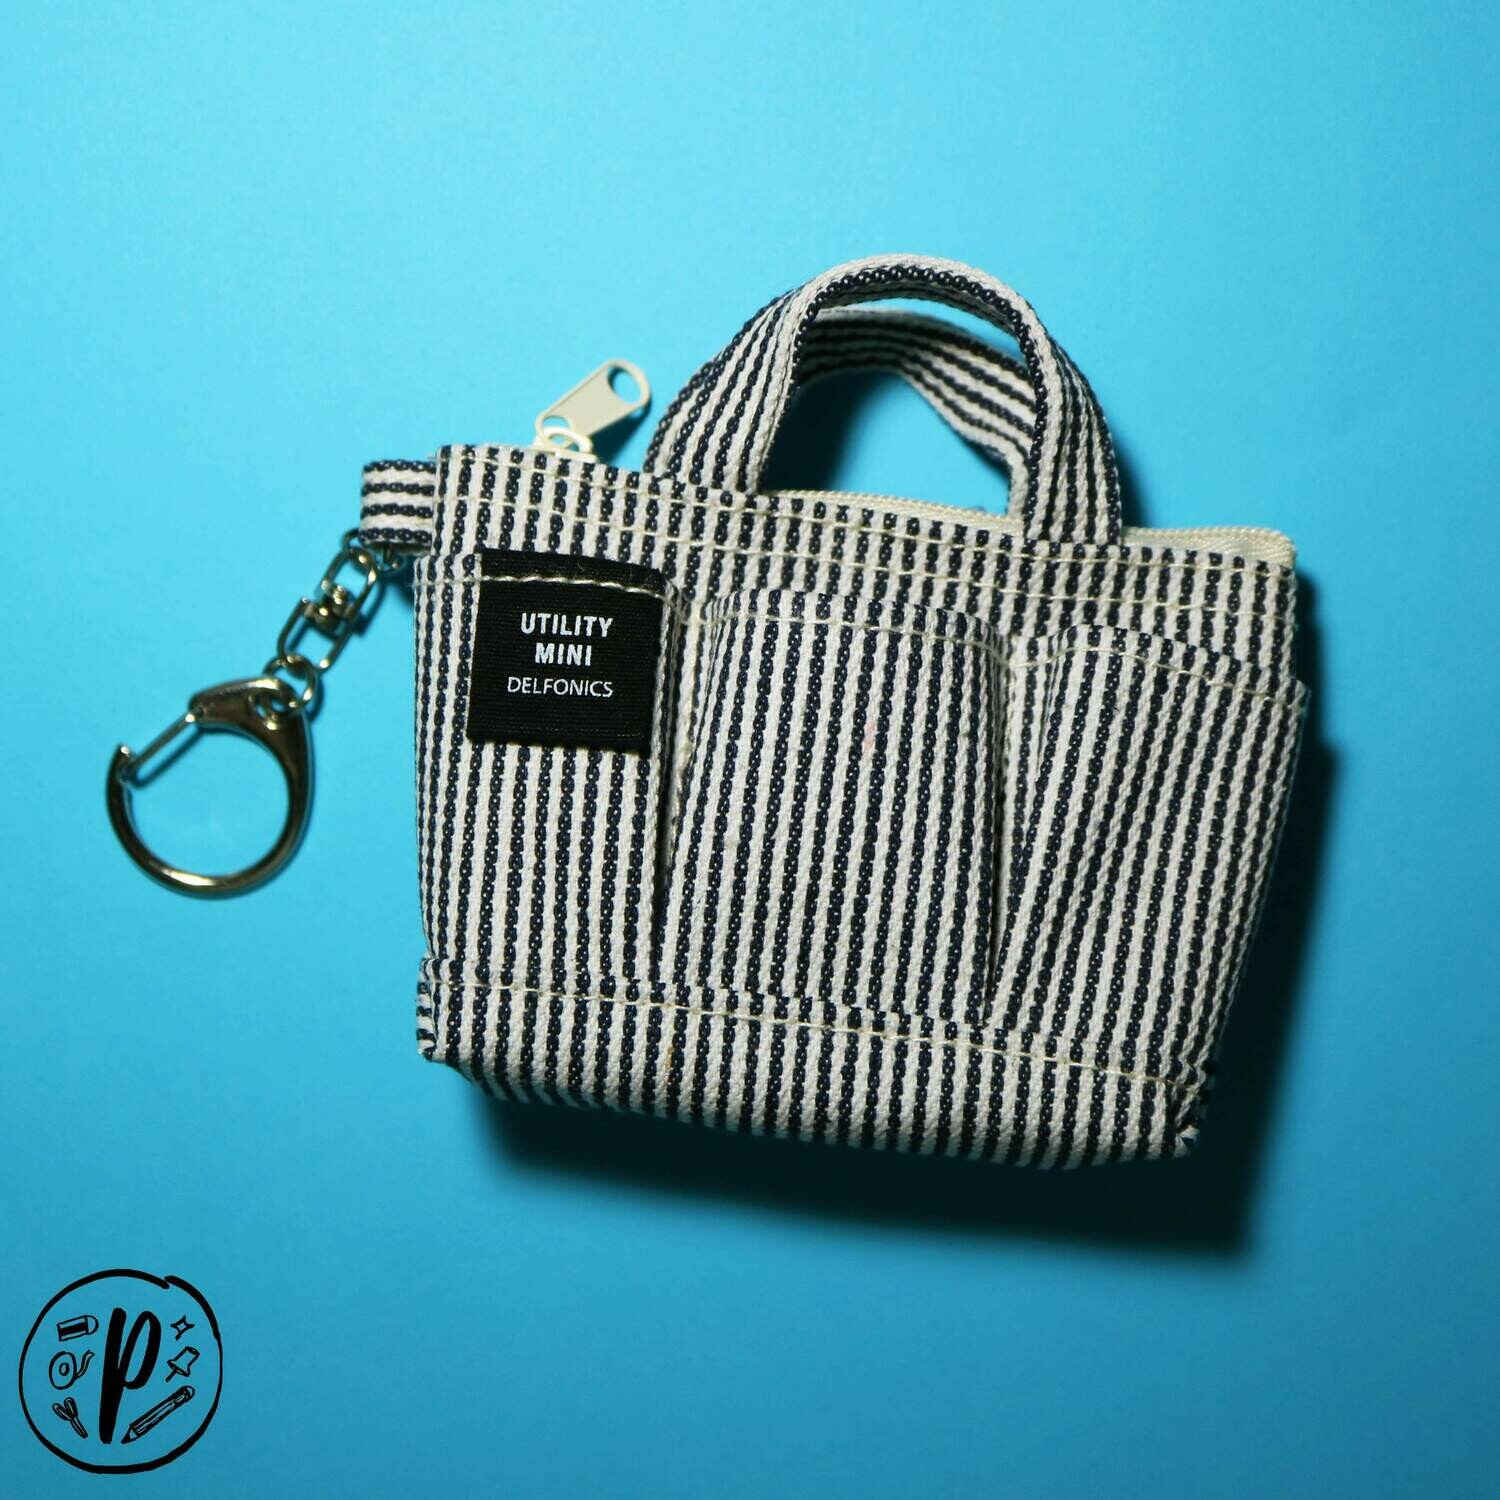 Delfonics Pouch (MINI) - Stripes